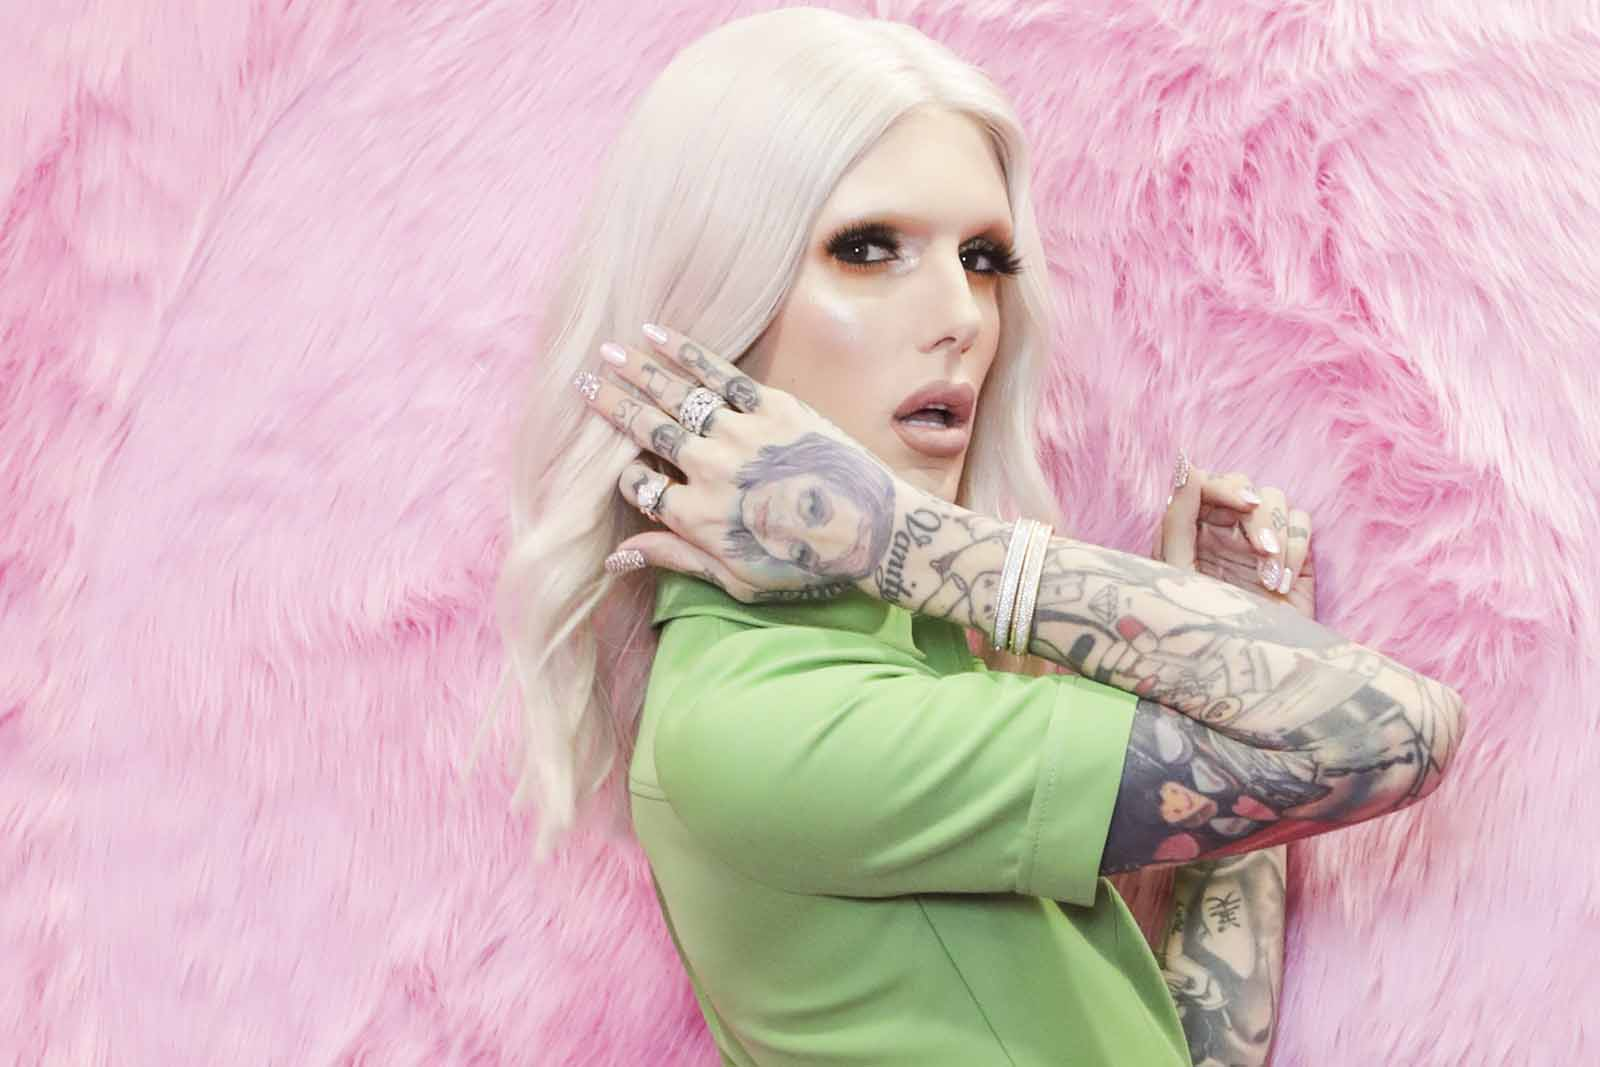 Jeffree Star seems untouchable, but will a sexual assault allegation finally hurt his sub count? Read more on the new allegations.